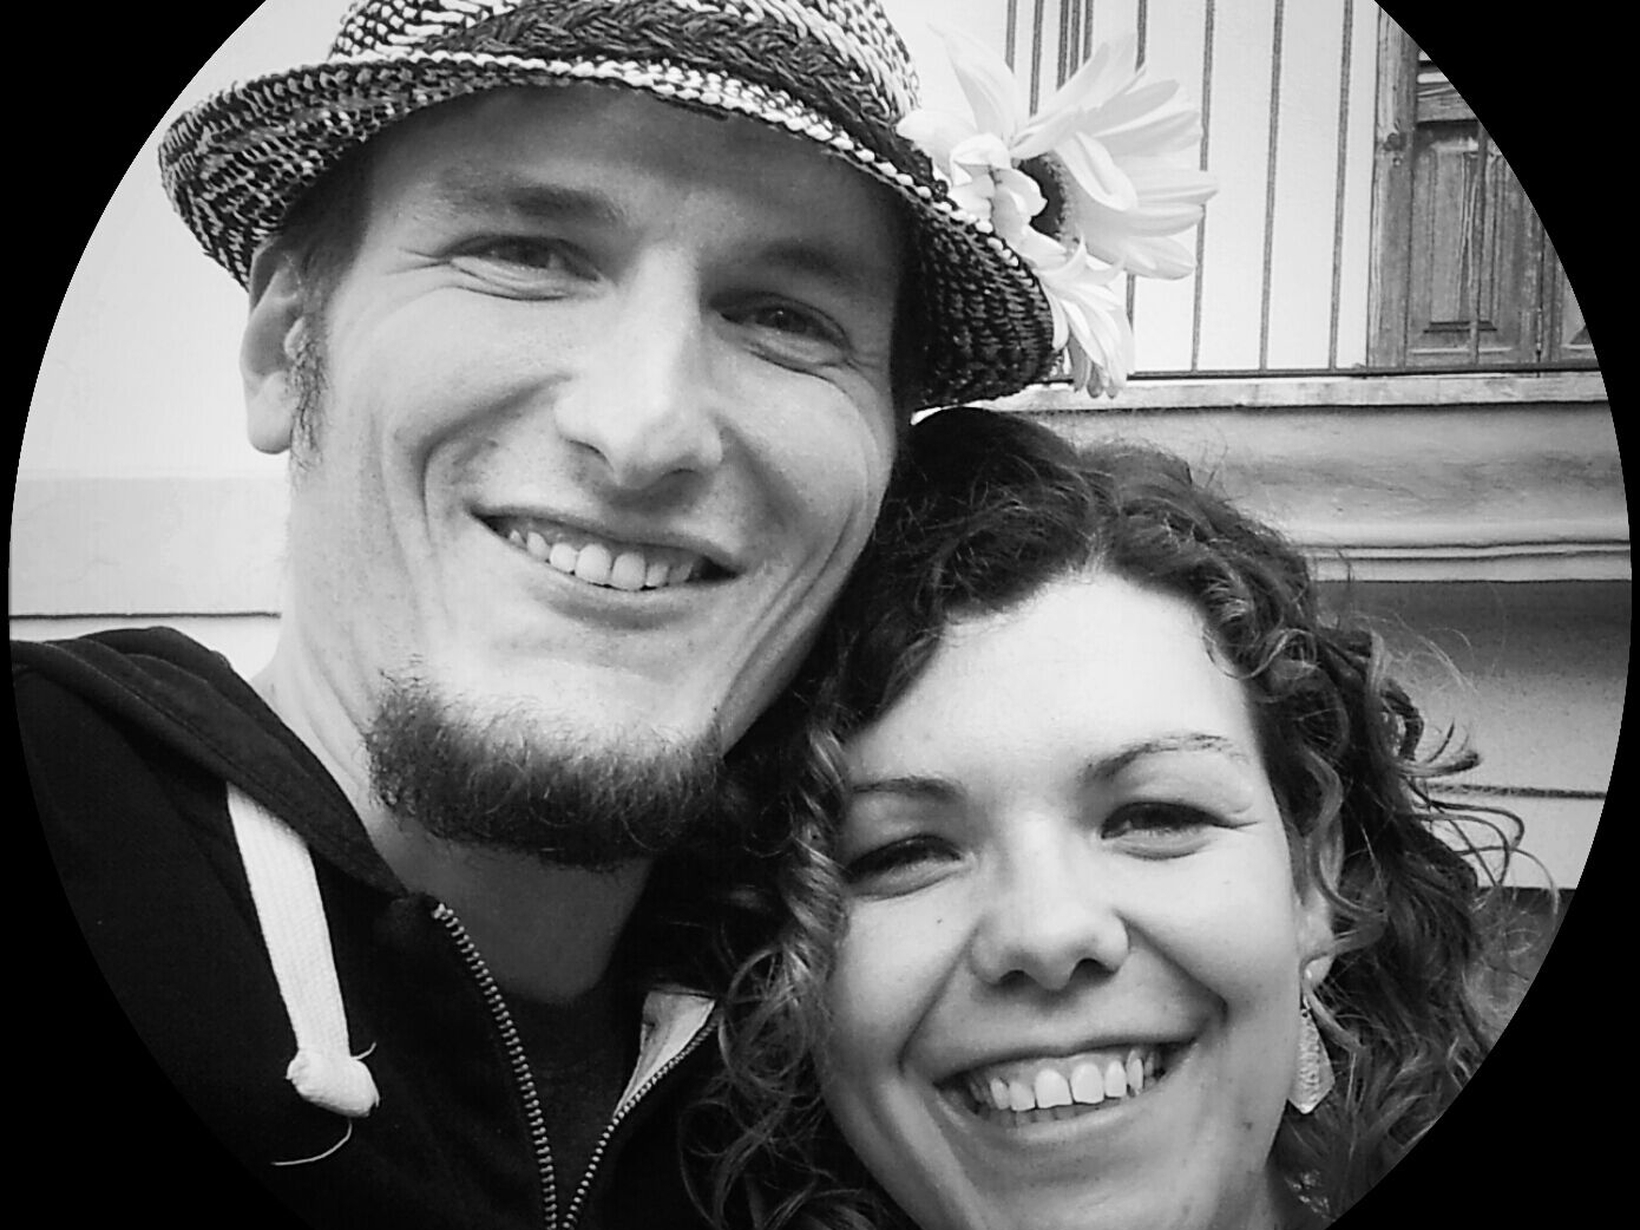 Patricia & Max from Munich, Germany